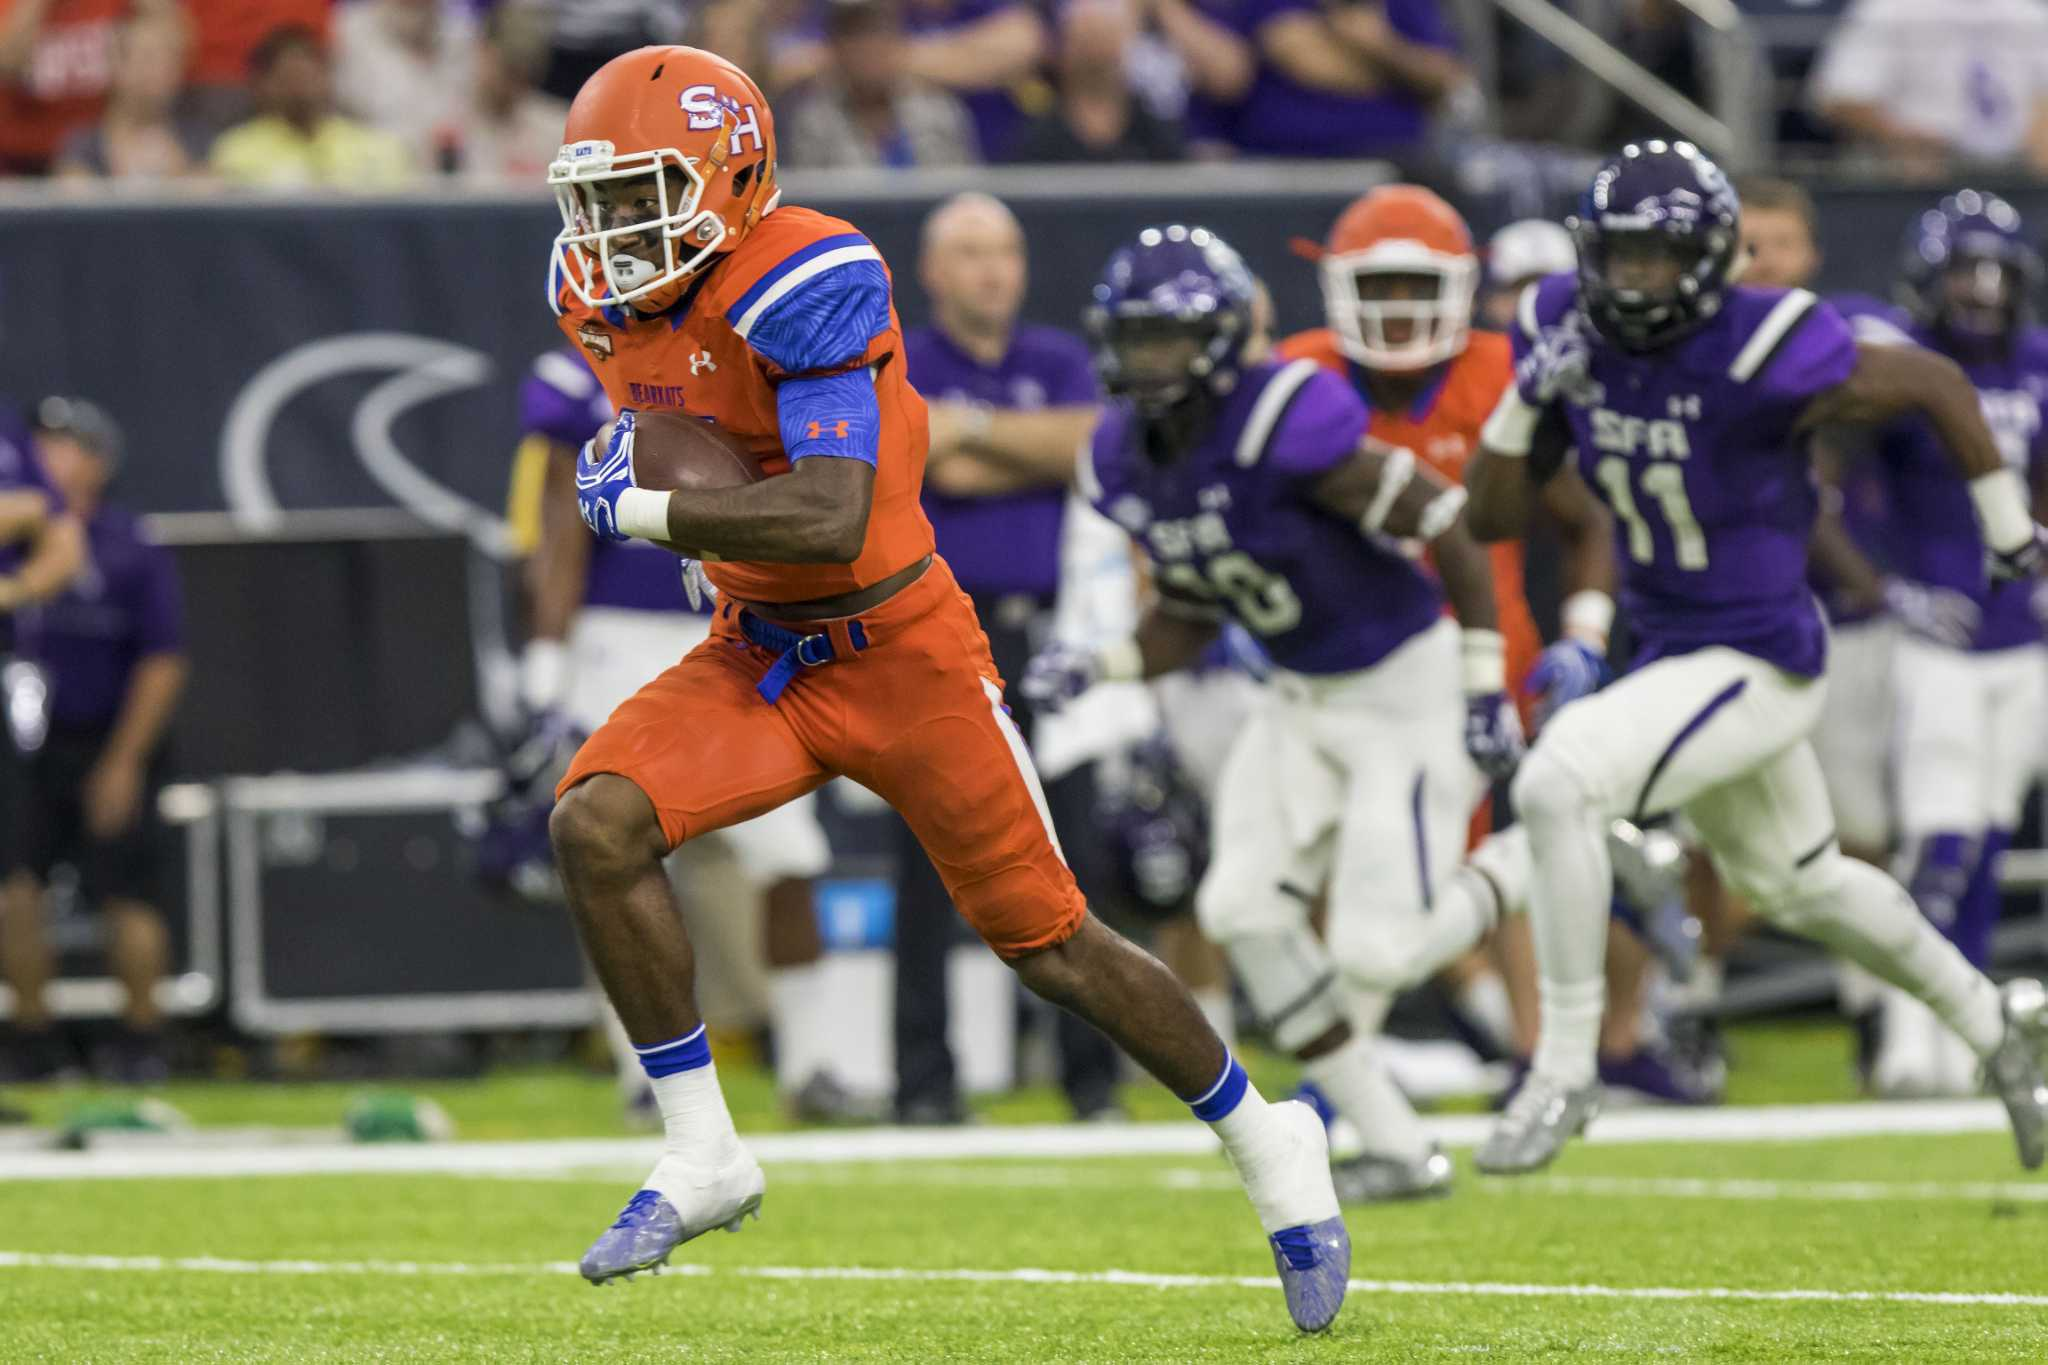 college football preview nicholls state at sam houston state